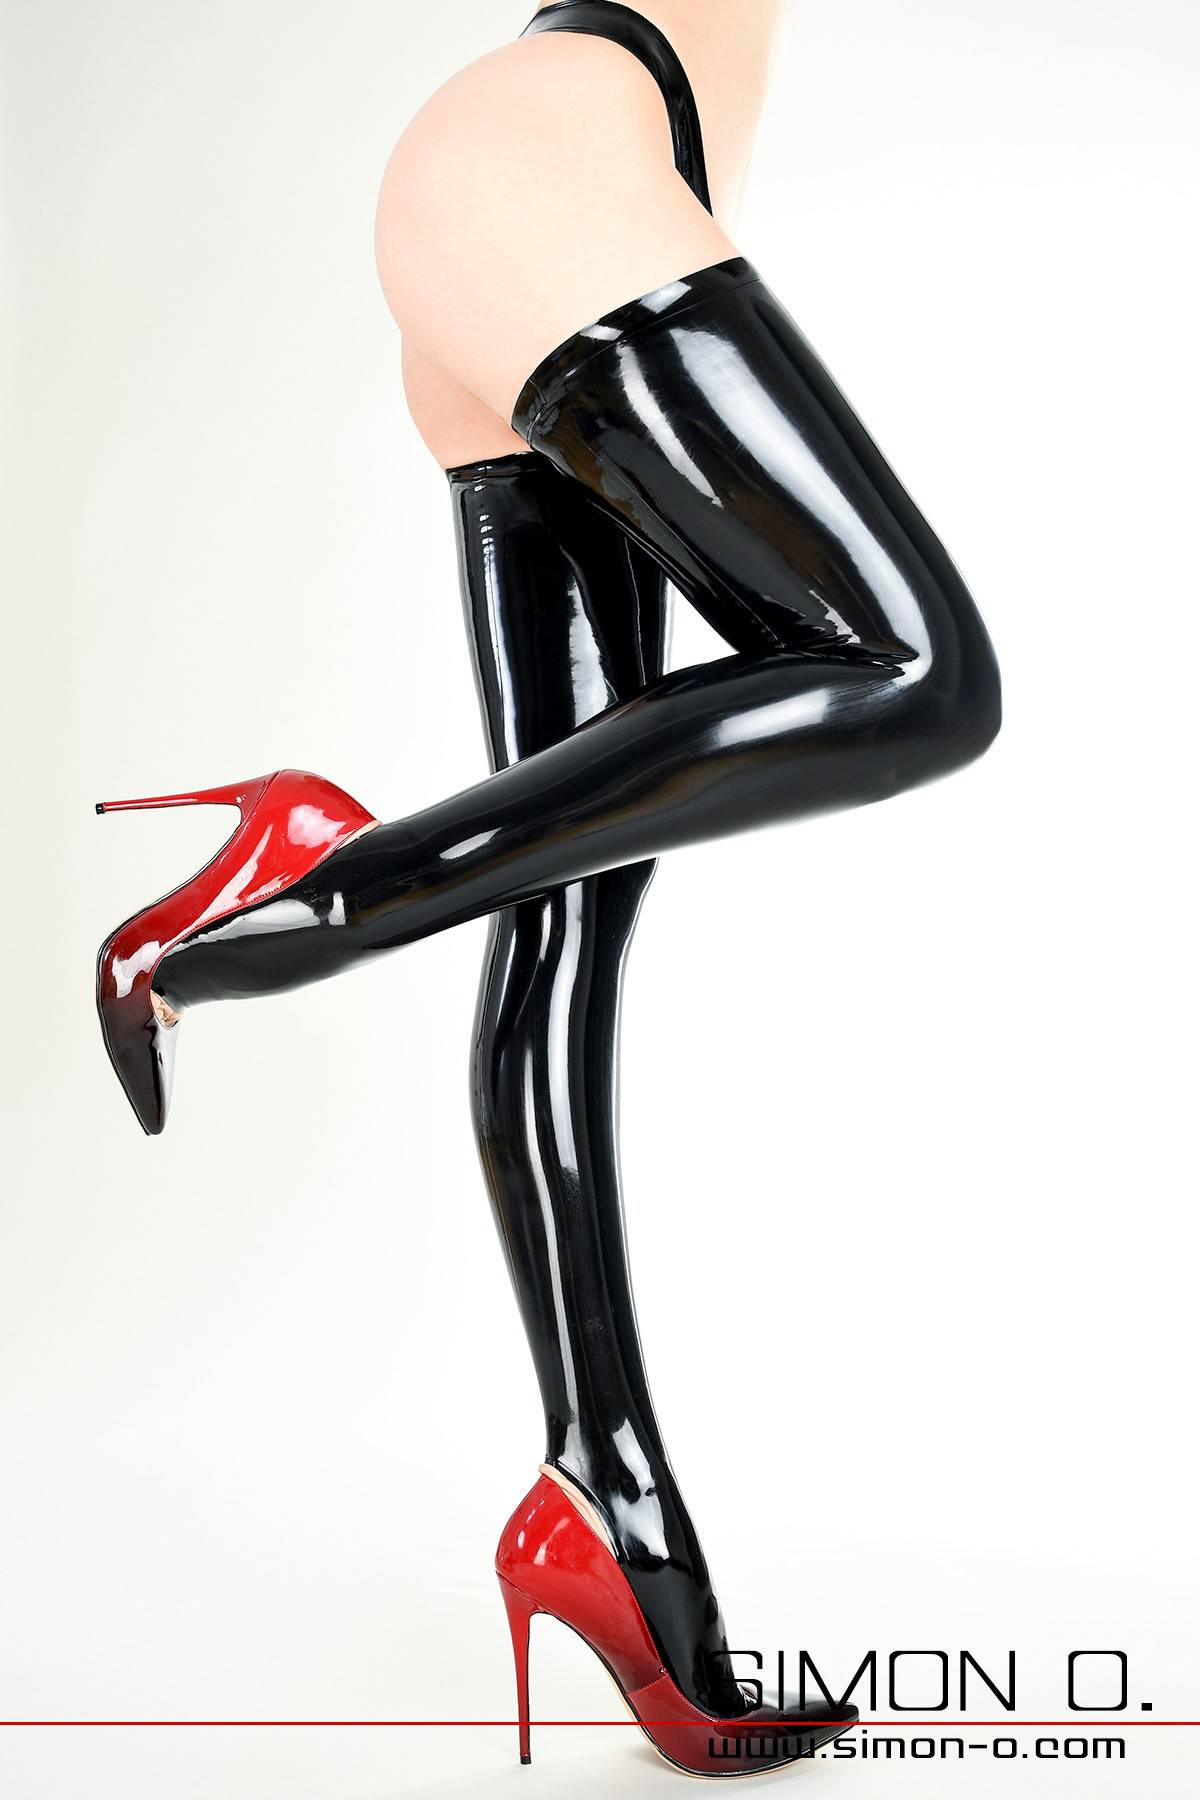 Ladies legs in shiny black stay-up latex stockings with high heels